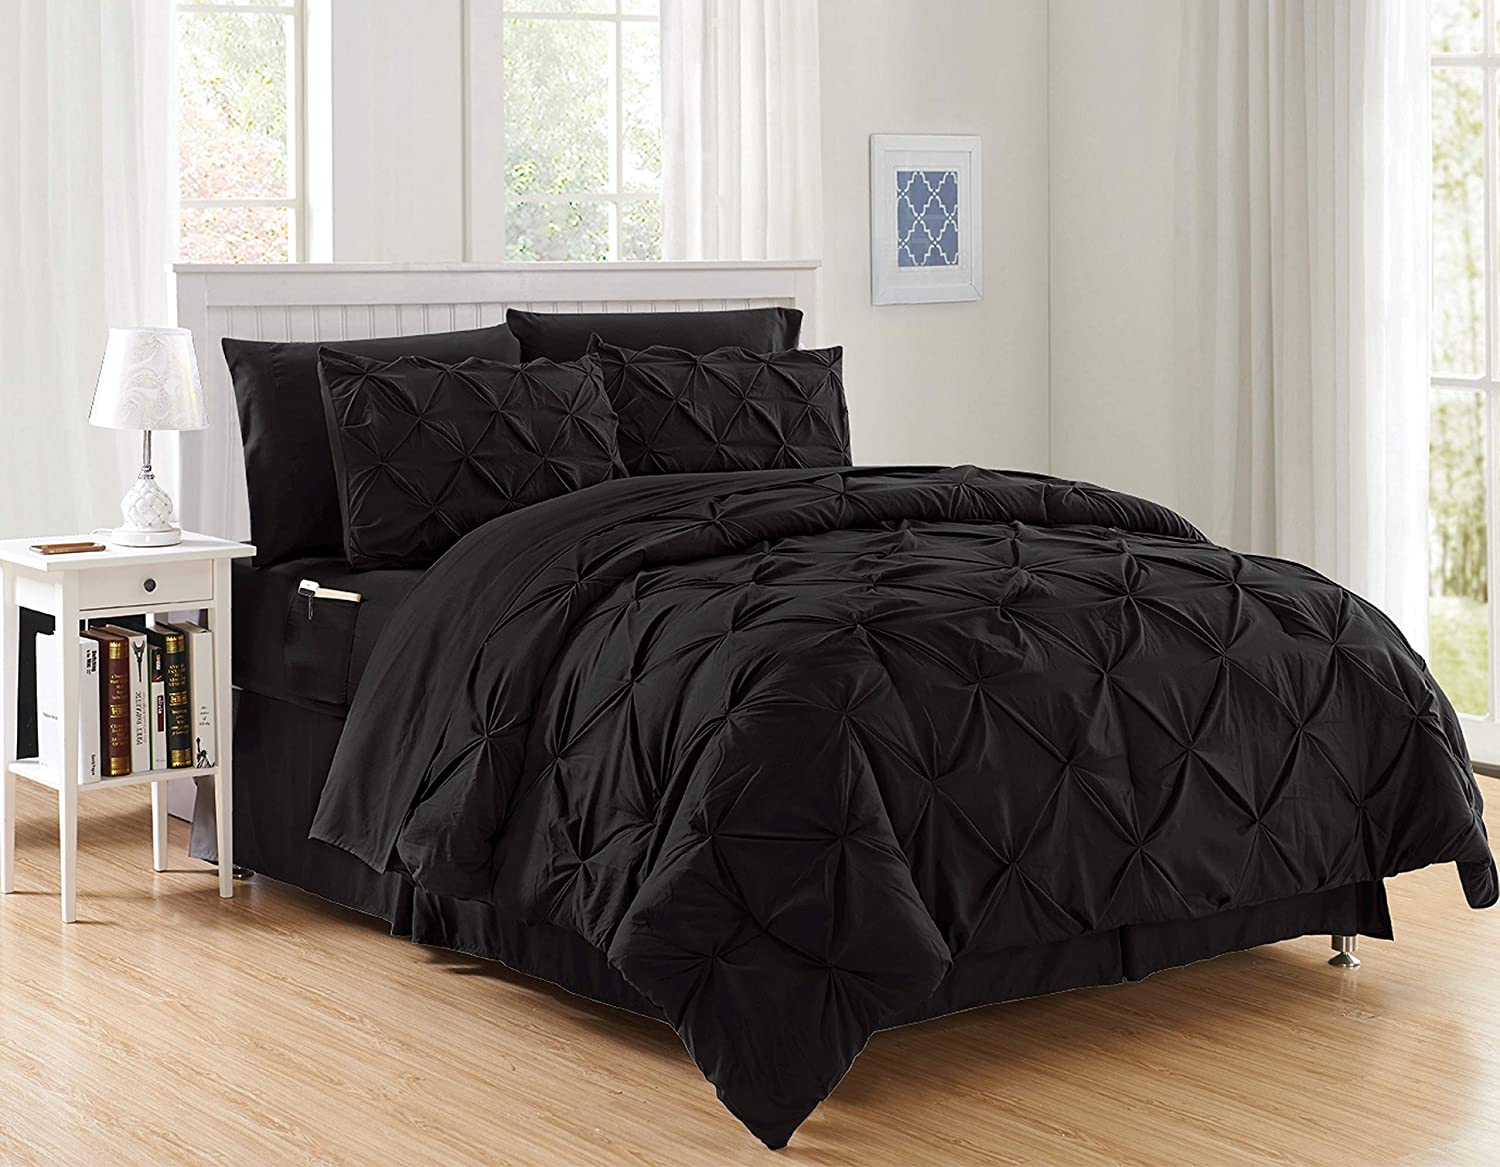 Bed-in-a-Bag Comforter Set on Amazon Silky Soft Complete Set Includes Bed Sheet Set with Double Sided